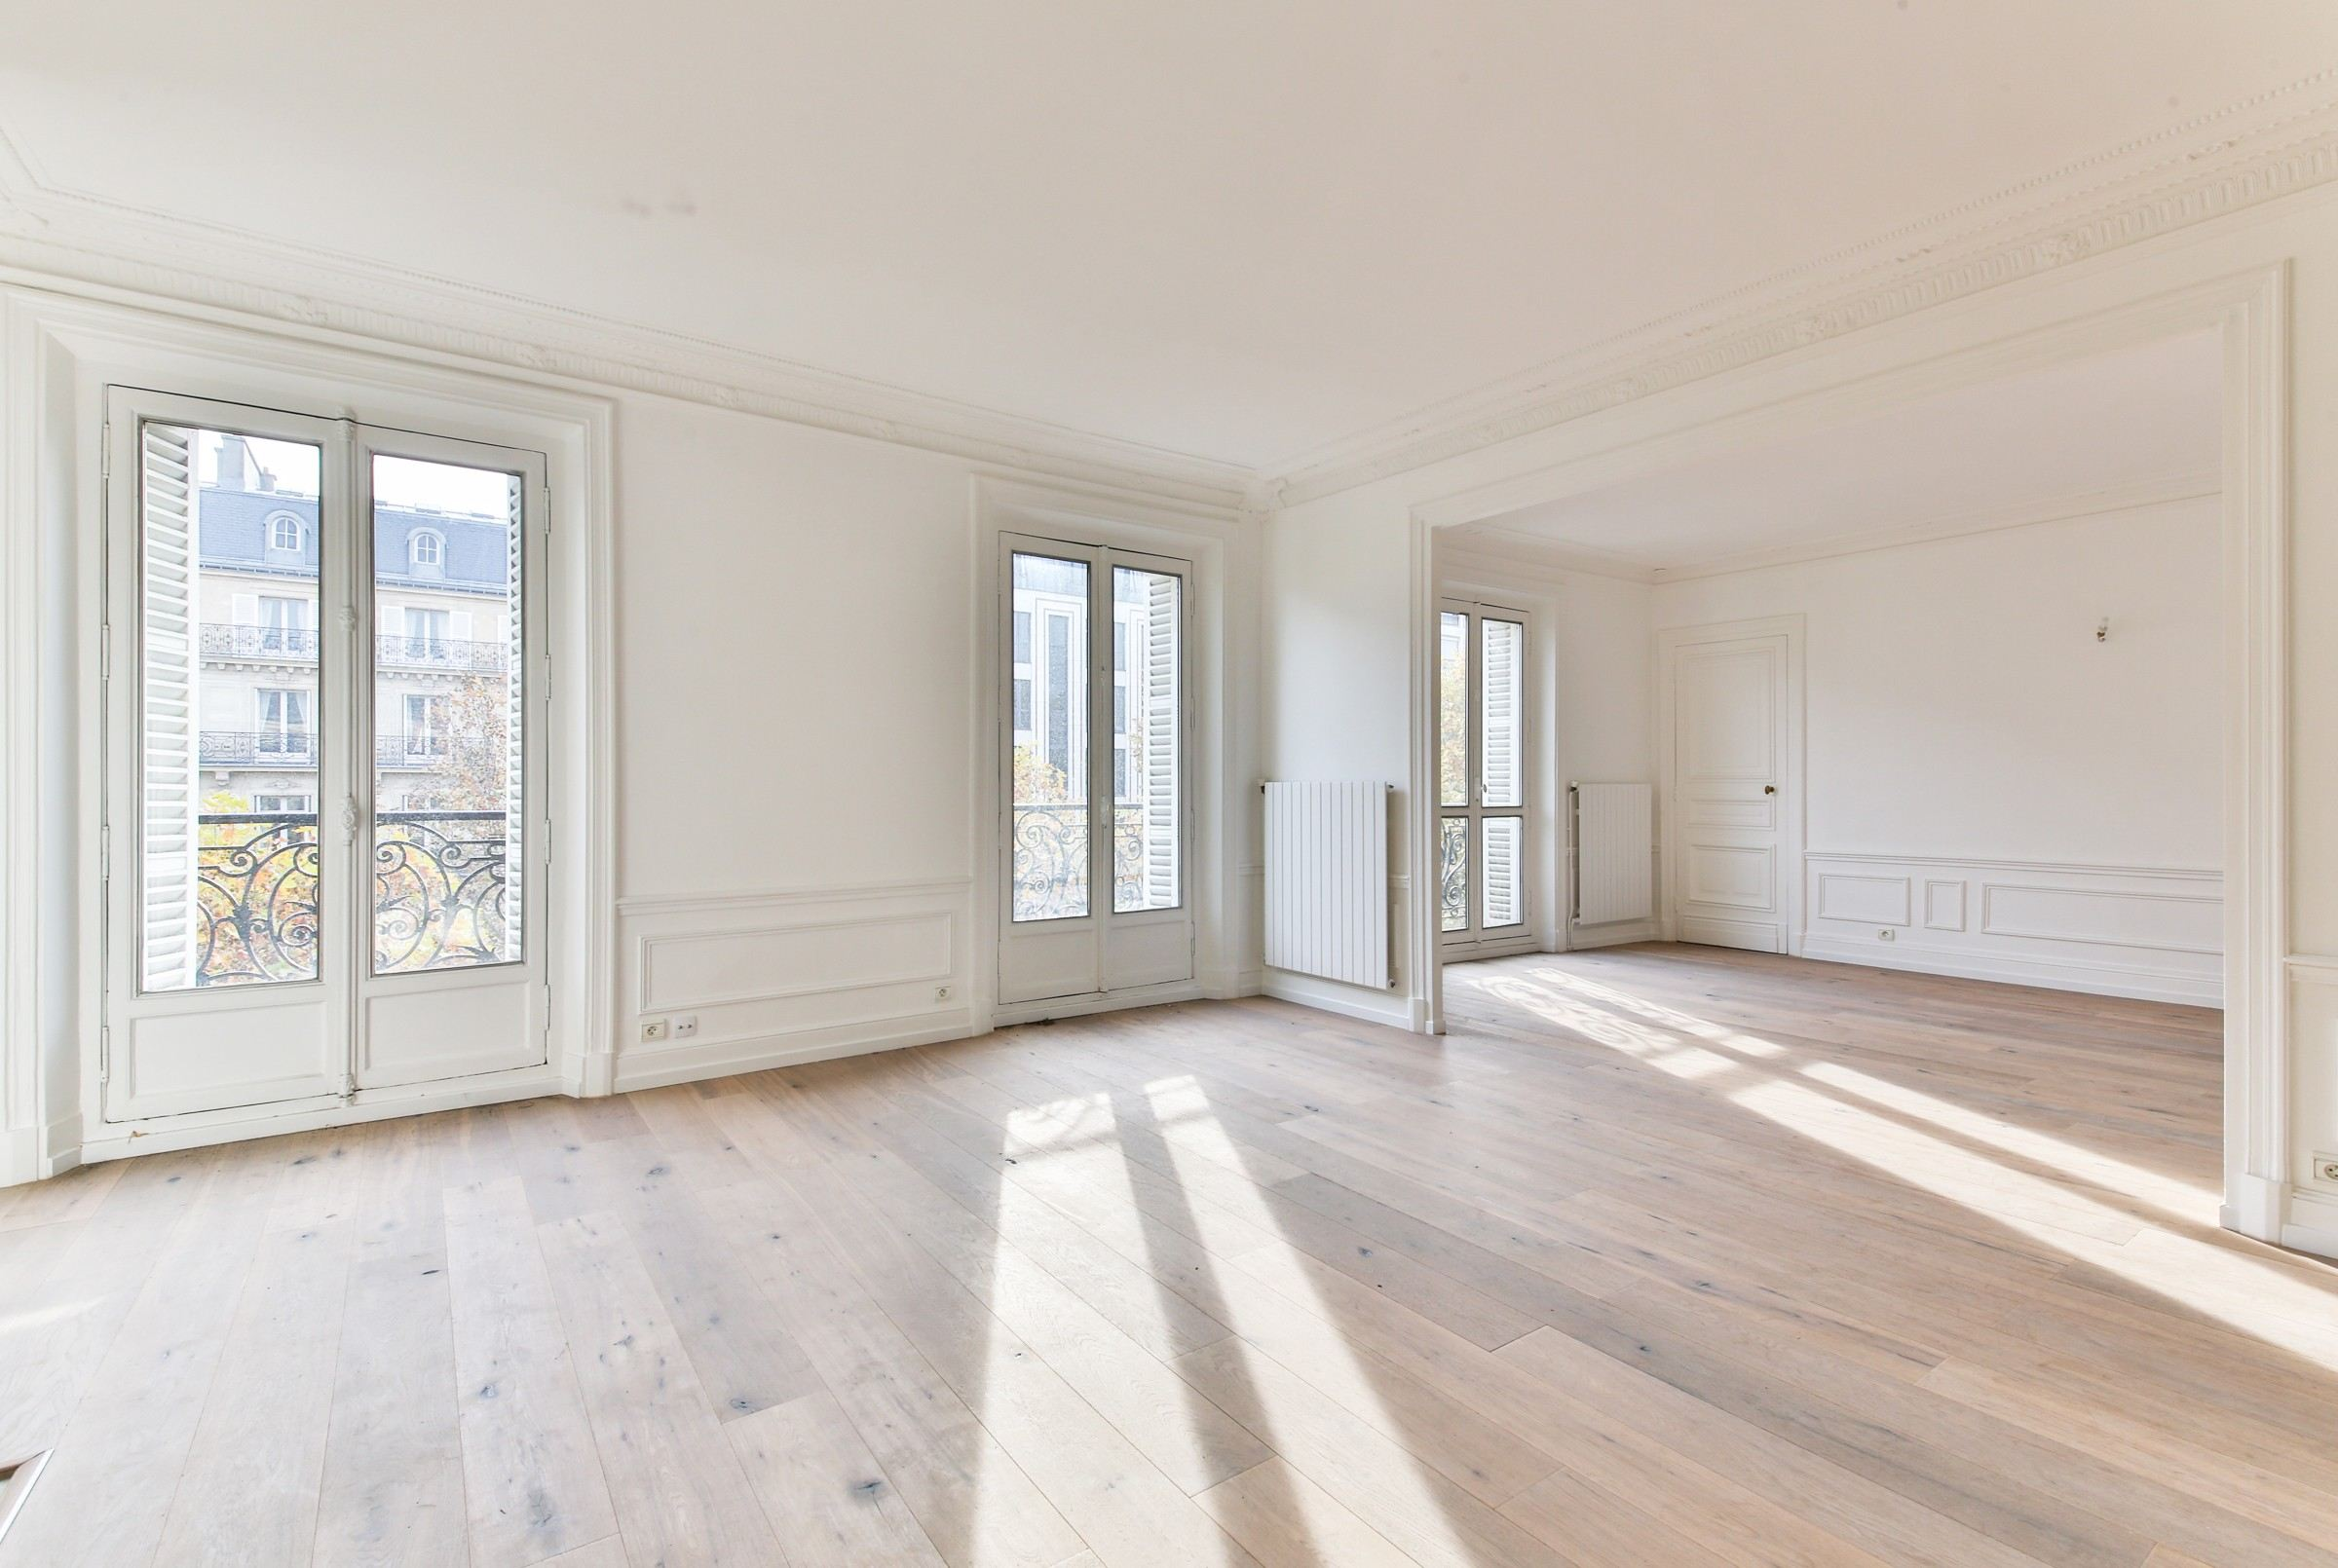 Property For Sale at Paris 8 - Friedland. A 130 sq.m apartment, sunny